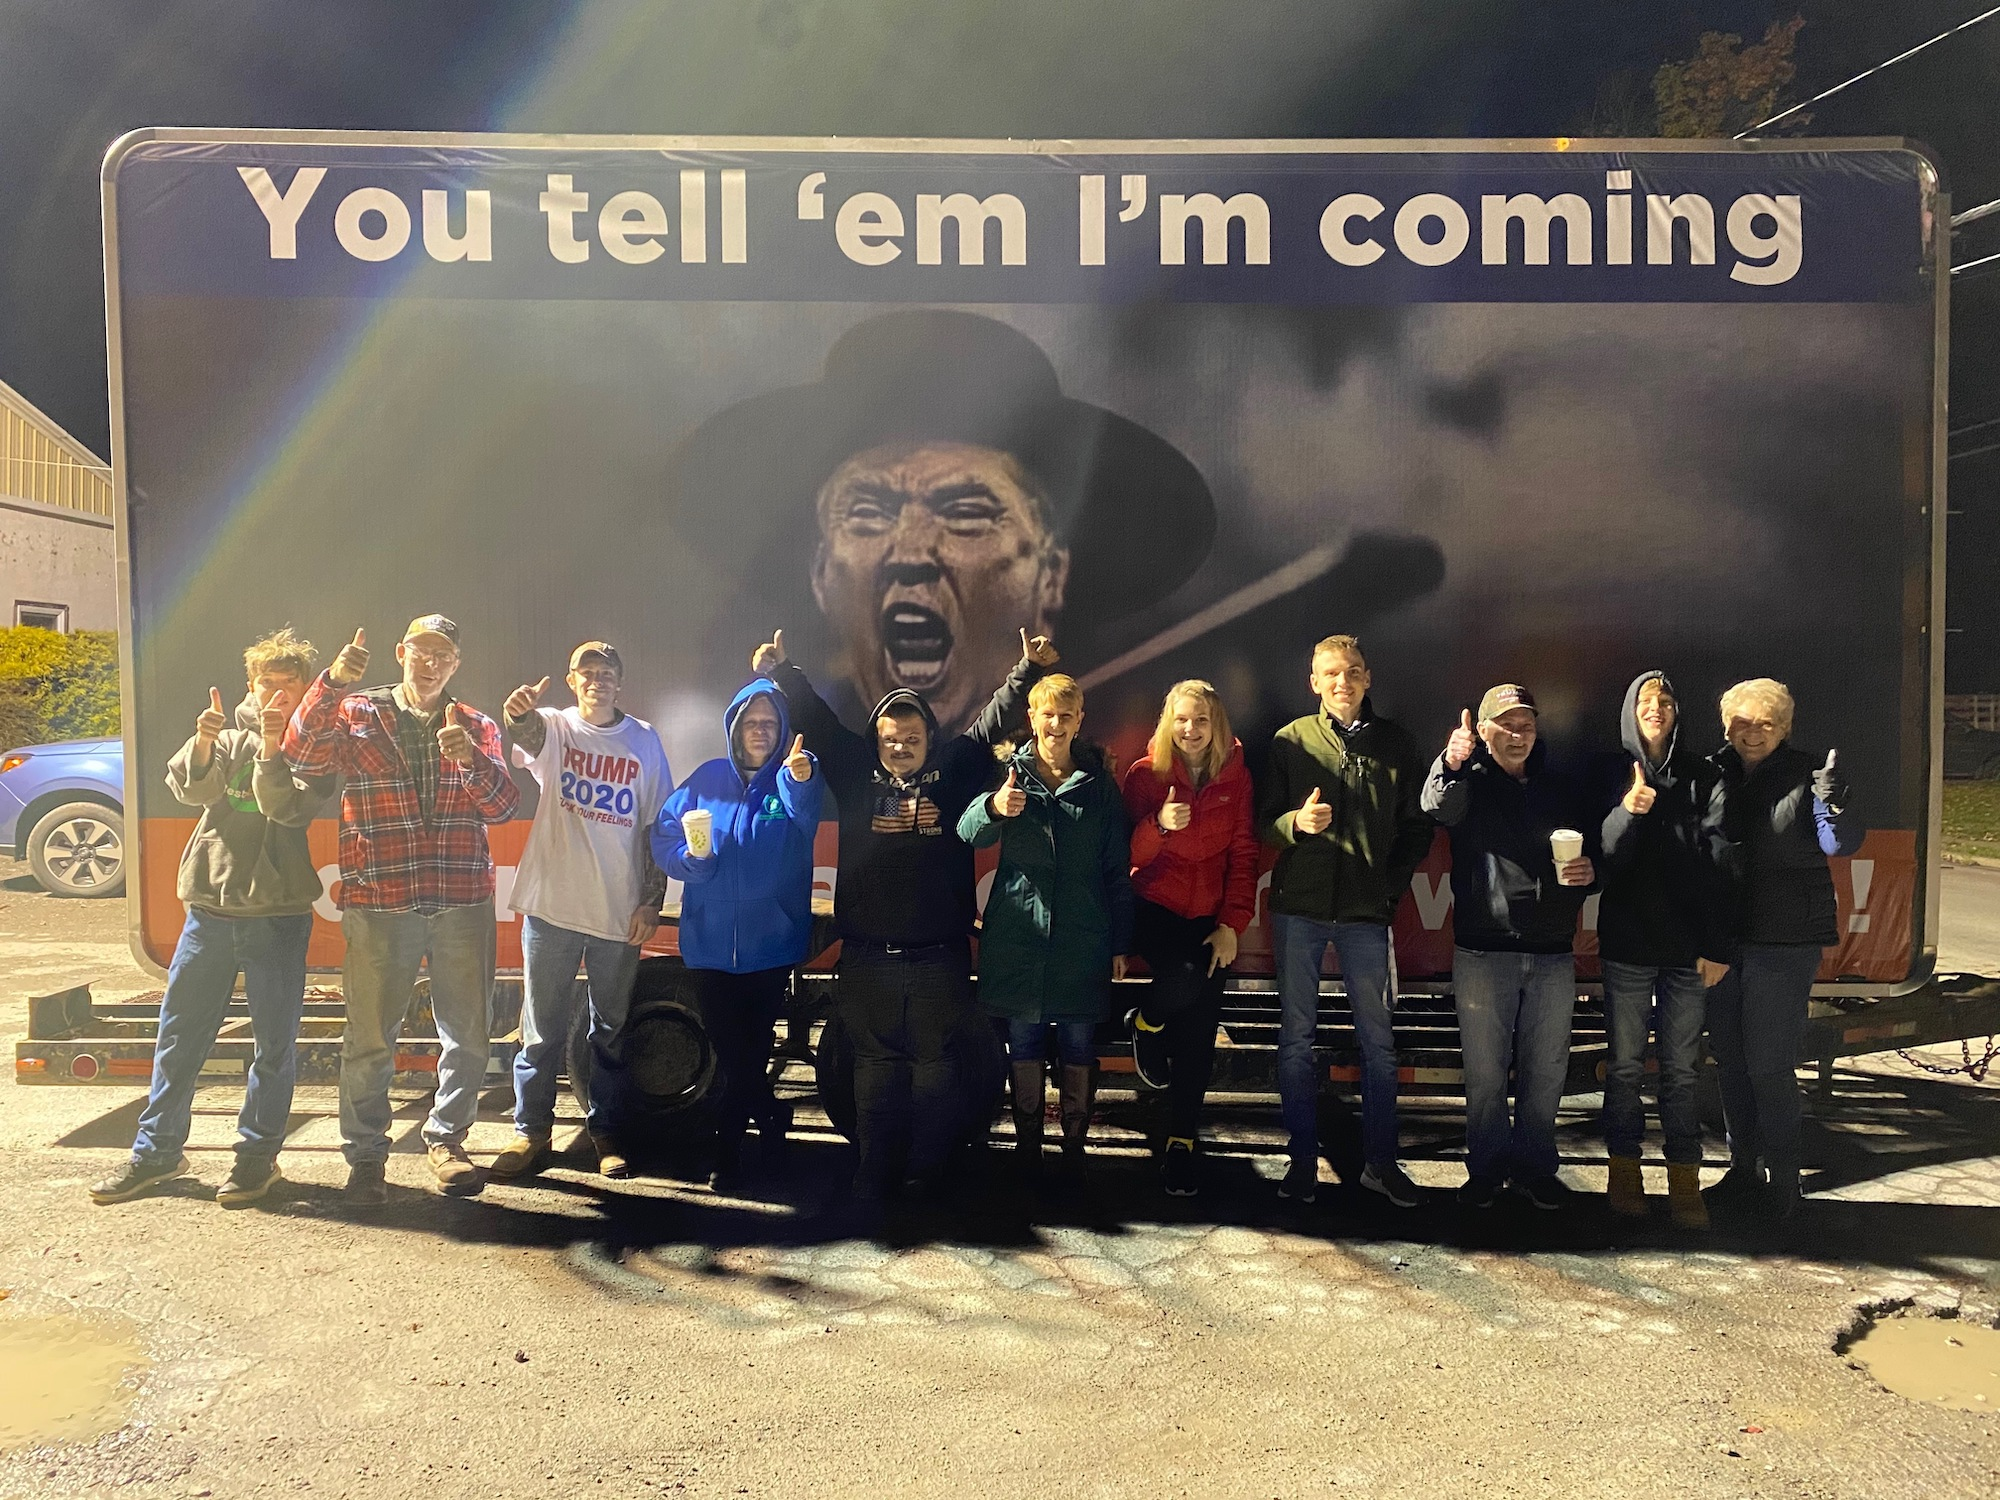 """Trump supporters stand under an image of President Trump with text that says """"You tell 'em I'm coming"""" in Lycoming County"""